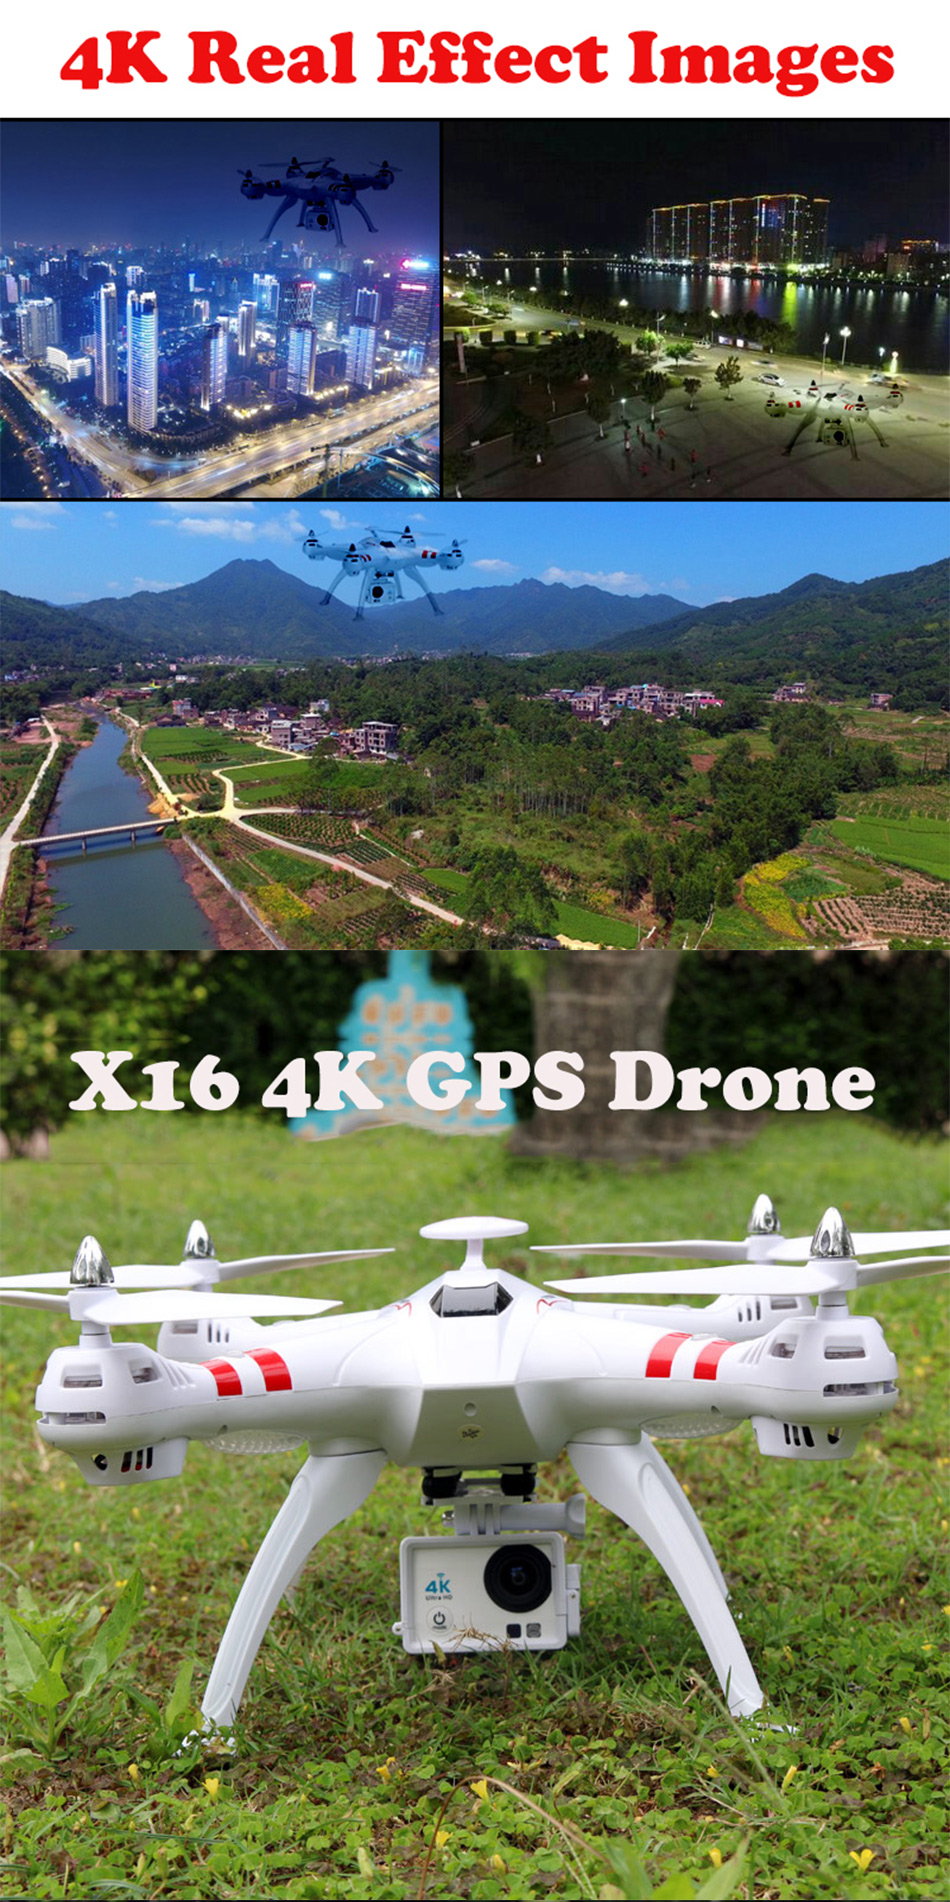 X16 rc drones with camera hd dron GPS height 500 meters fly distance Fpv quadcopter rc helicopter Brushless Motor 4K 1600W Toys 2